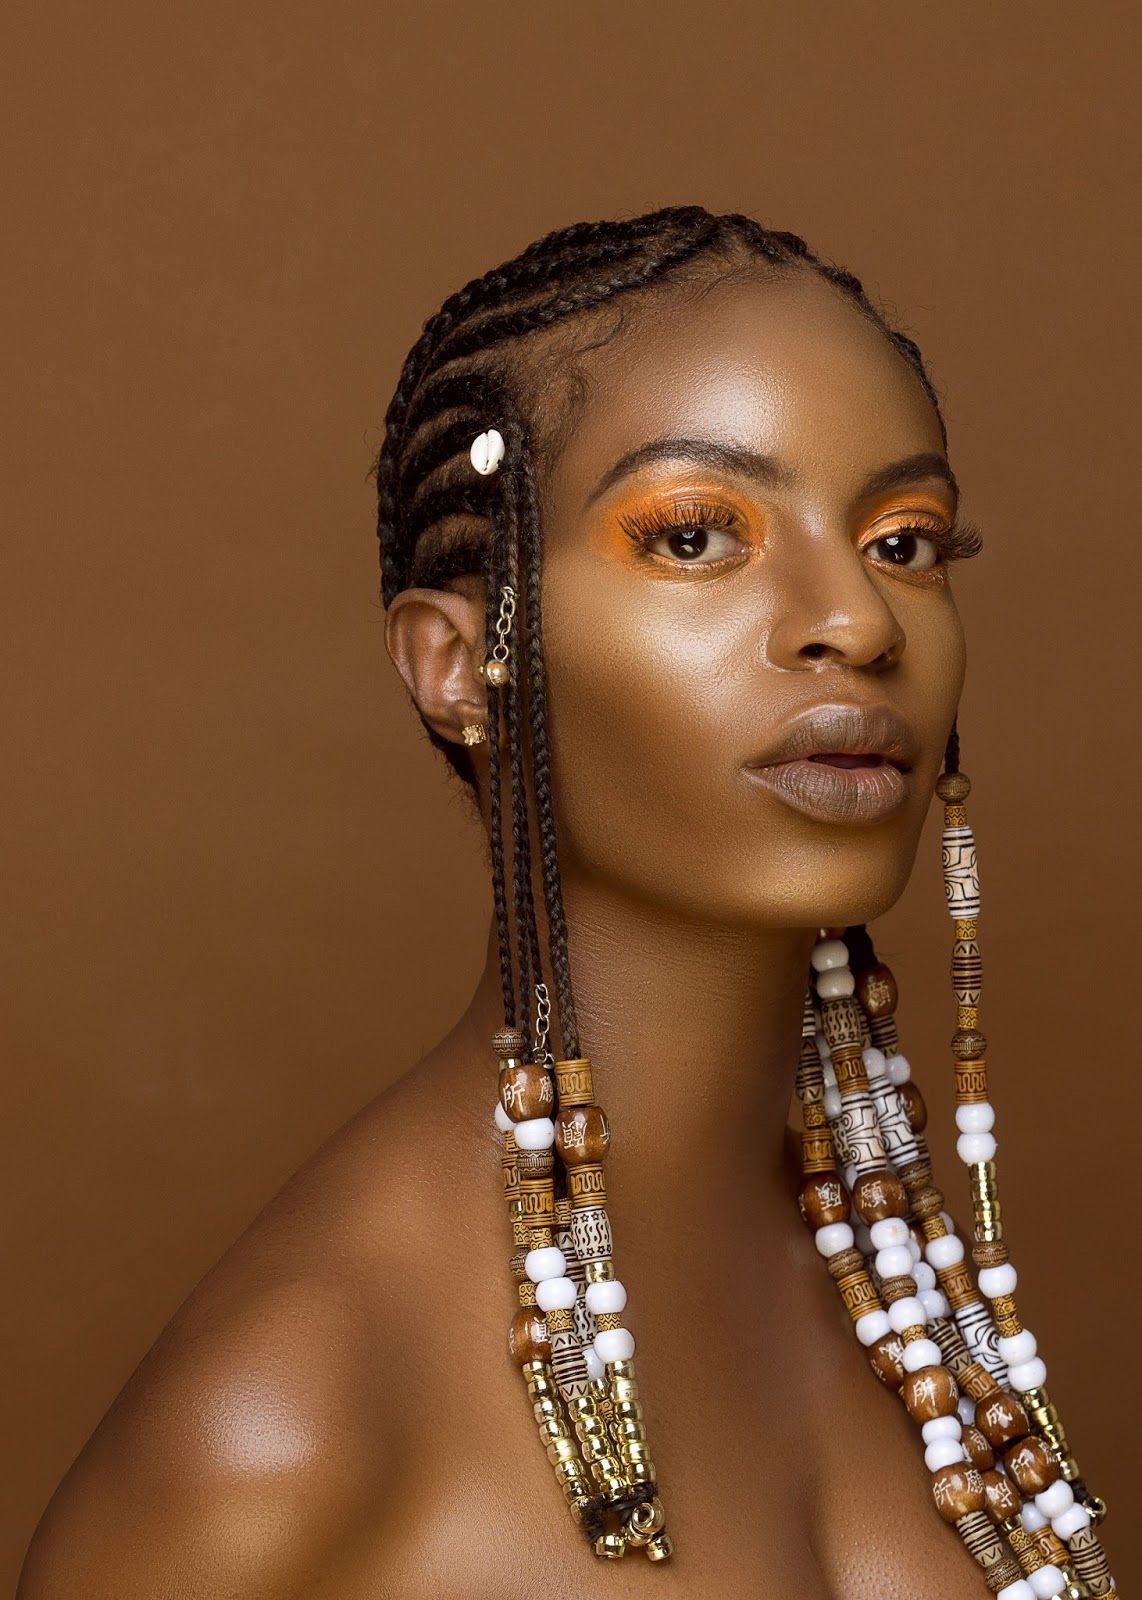 10 Inspirational Photos Of Braids With Beads And Cowrie